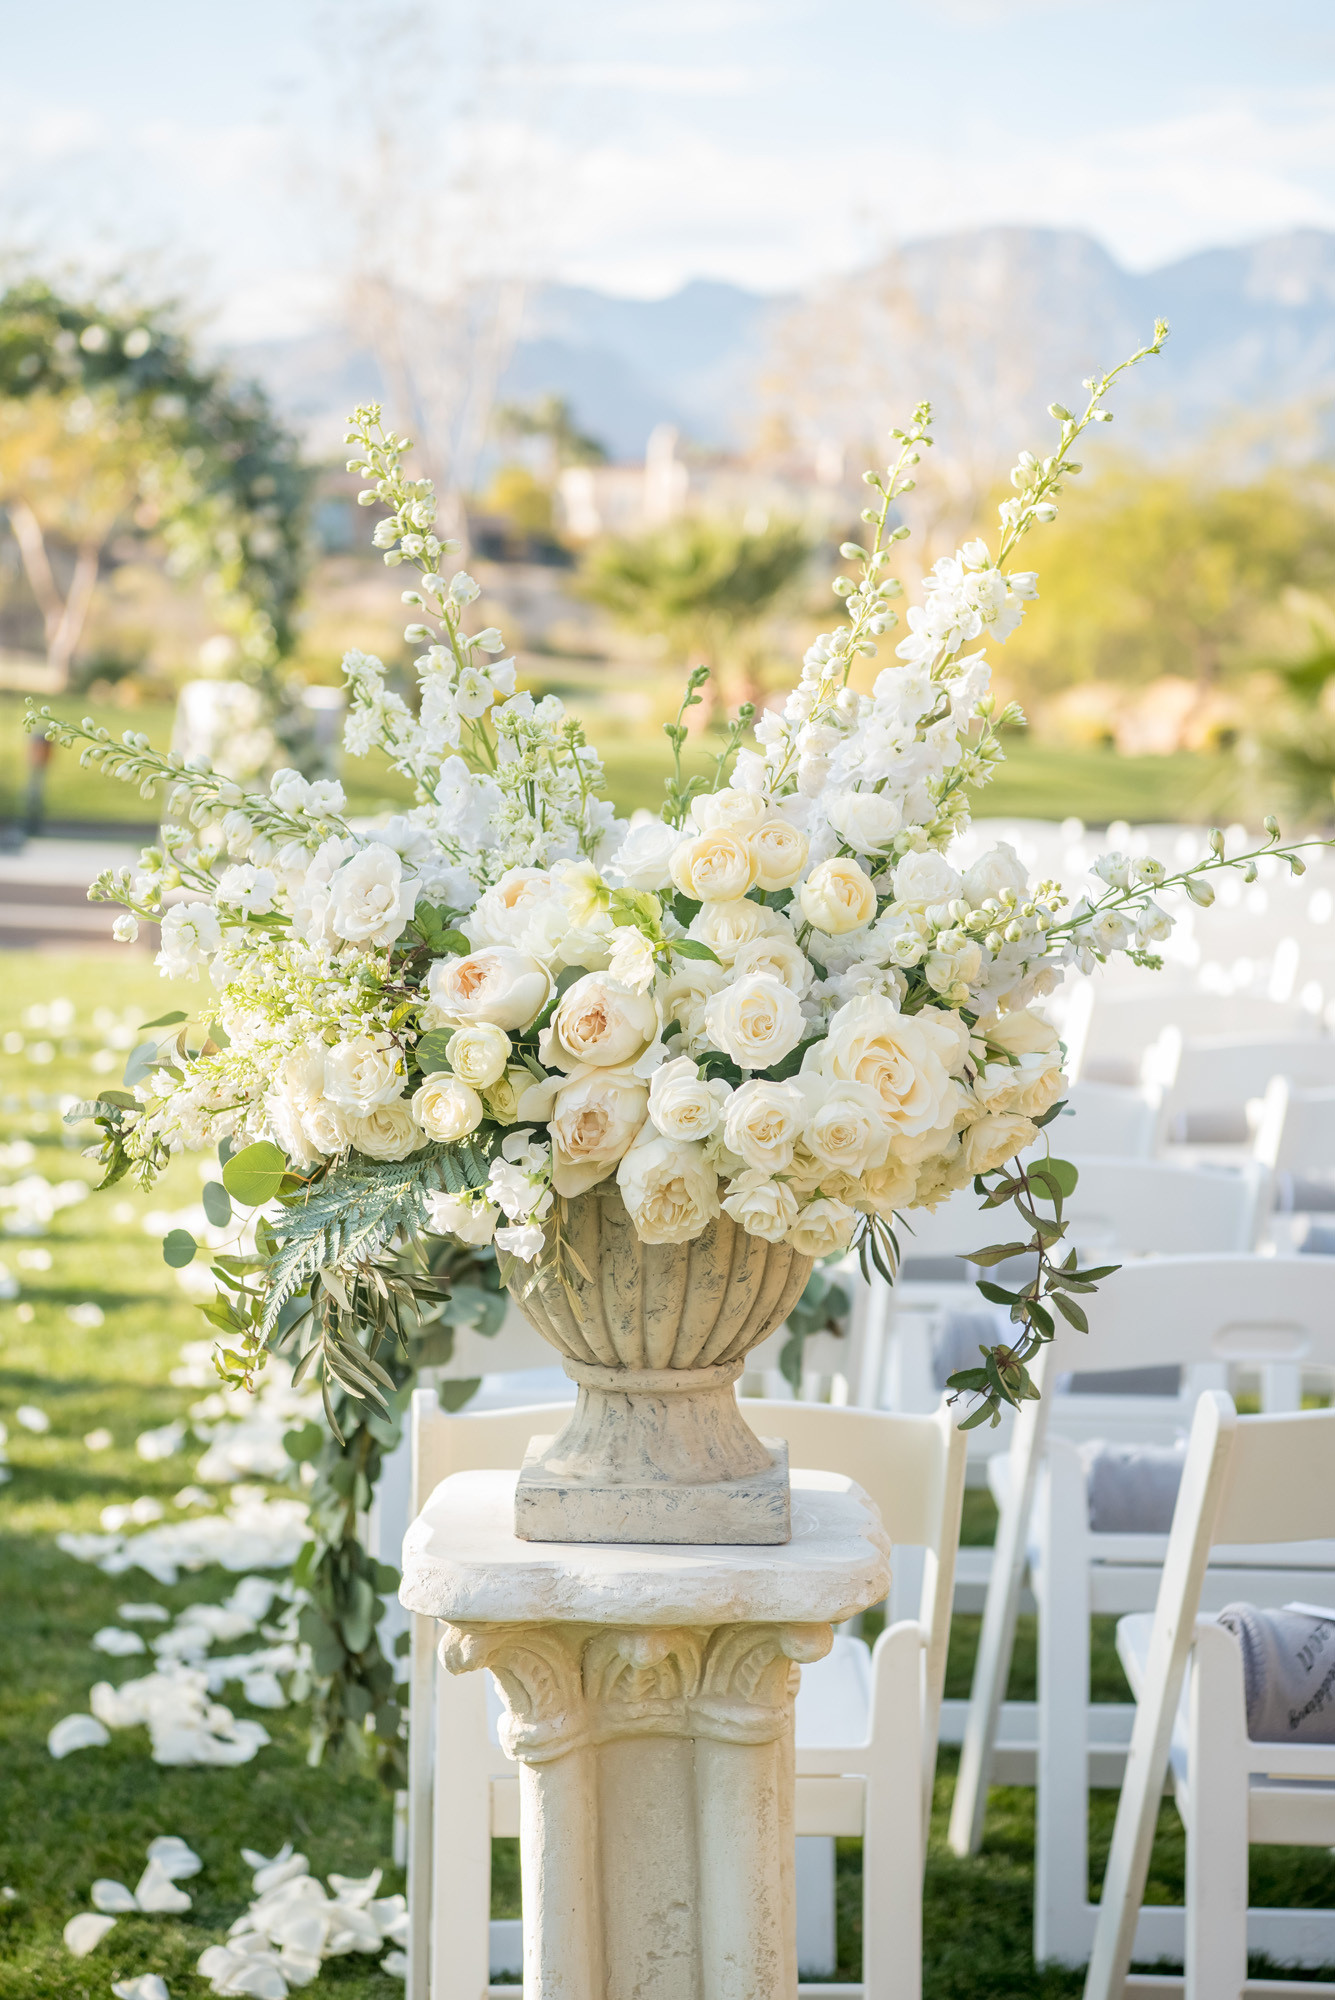 Ceremony Aisle arragnements with garden roses, peonies, and delphinium. Photo: KMH Photography